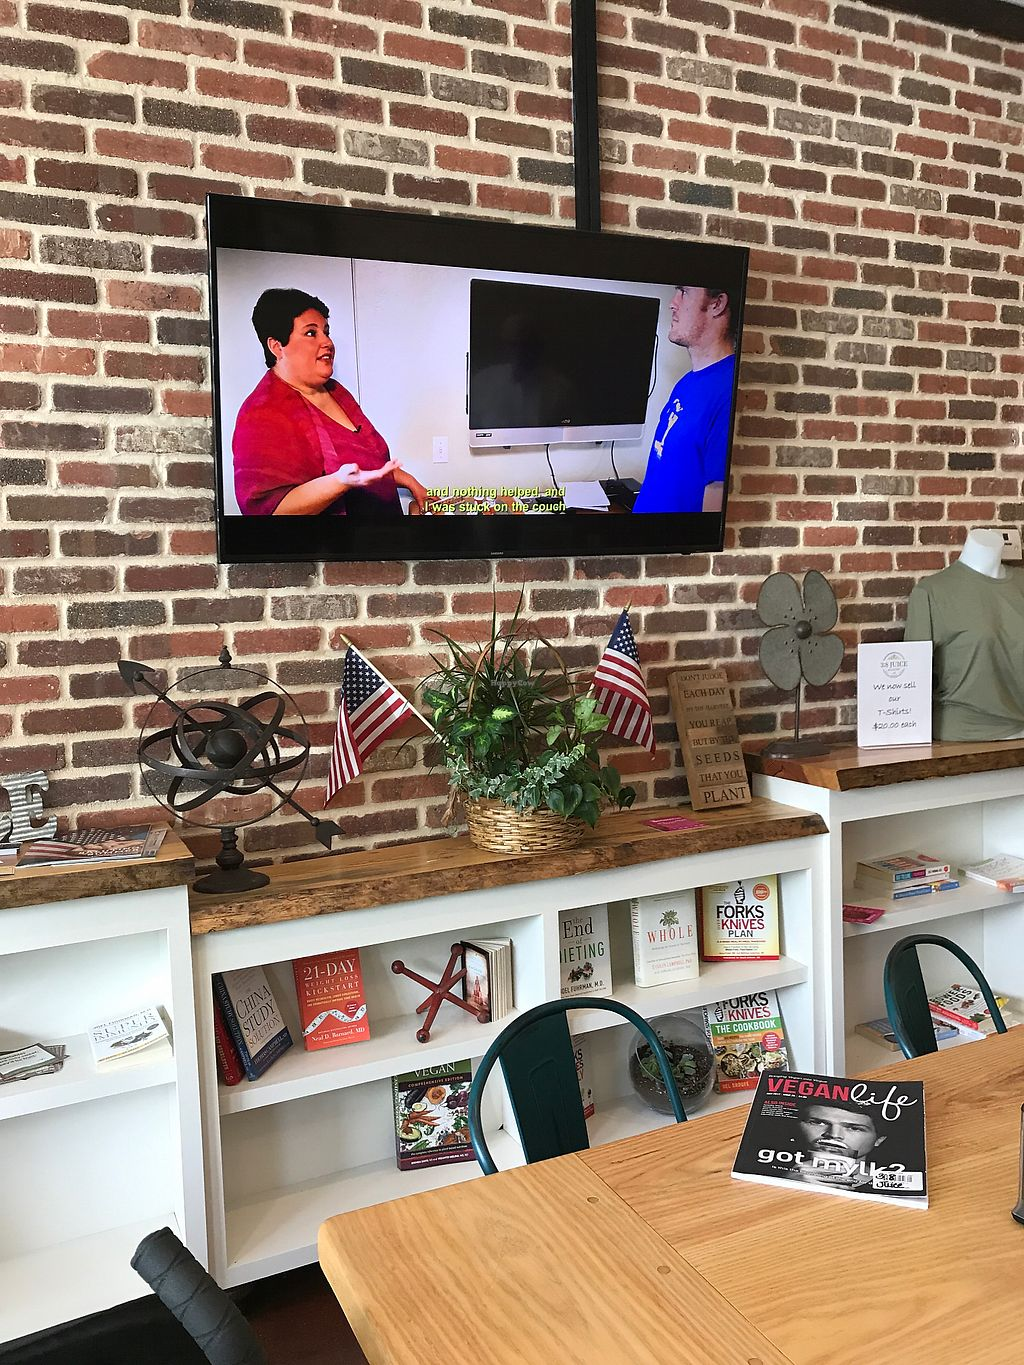 """Photo of 3:8 Juice & Eatery  by <a href=""""/members/profile/RegernerativeDetox"""">RegernerativeDetox</a> <br/>What The Health was on the TV in this super chill eatery.  <br/> July 24, 2017  - <a href='/contact/abuse/image/87035/284490'>Report</a>"""